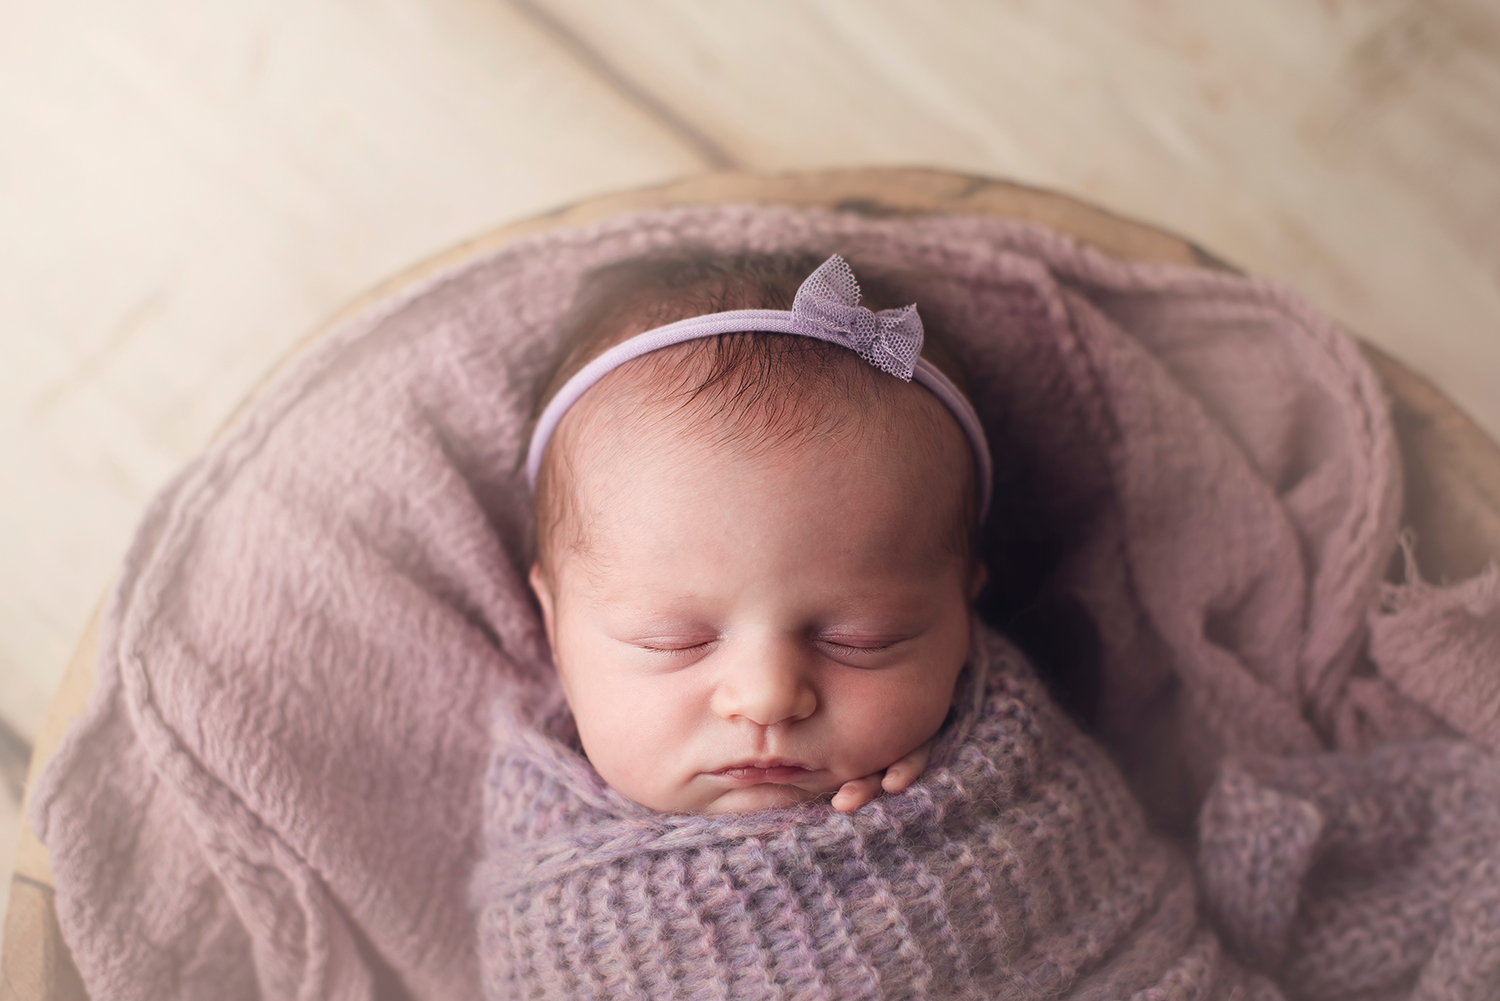 columbus-ohio-newborn-photographer-barebabyphotography.jpg